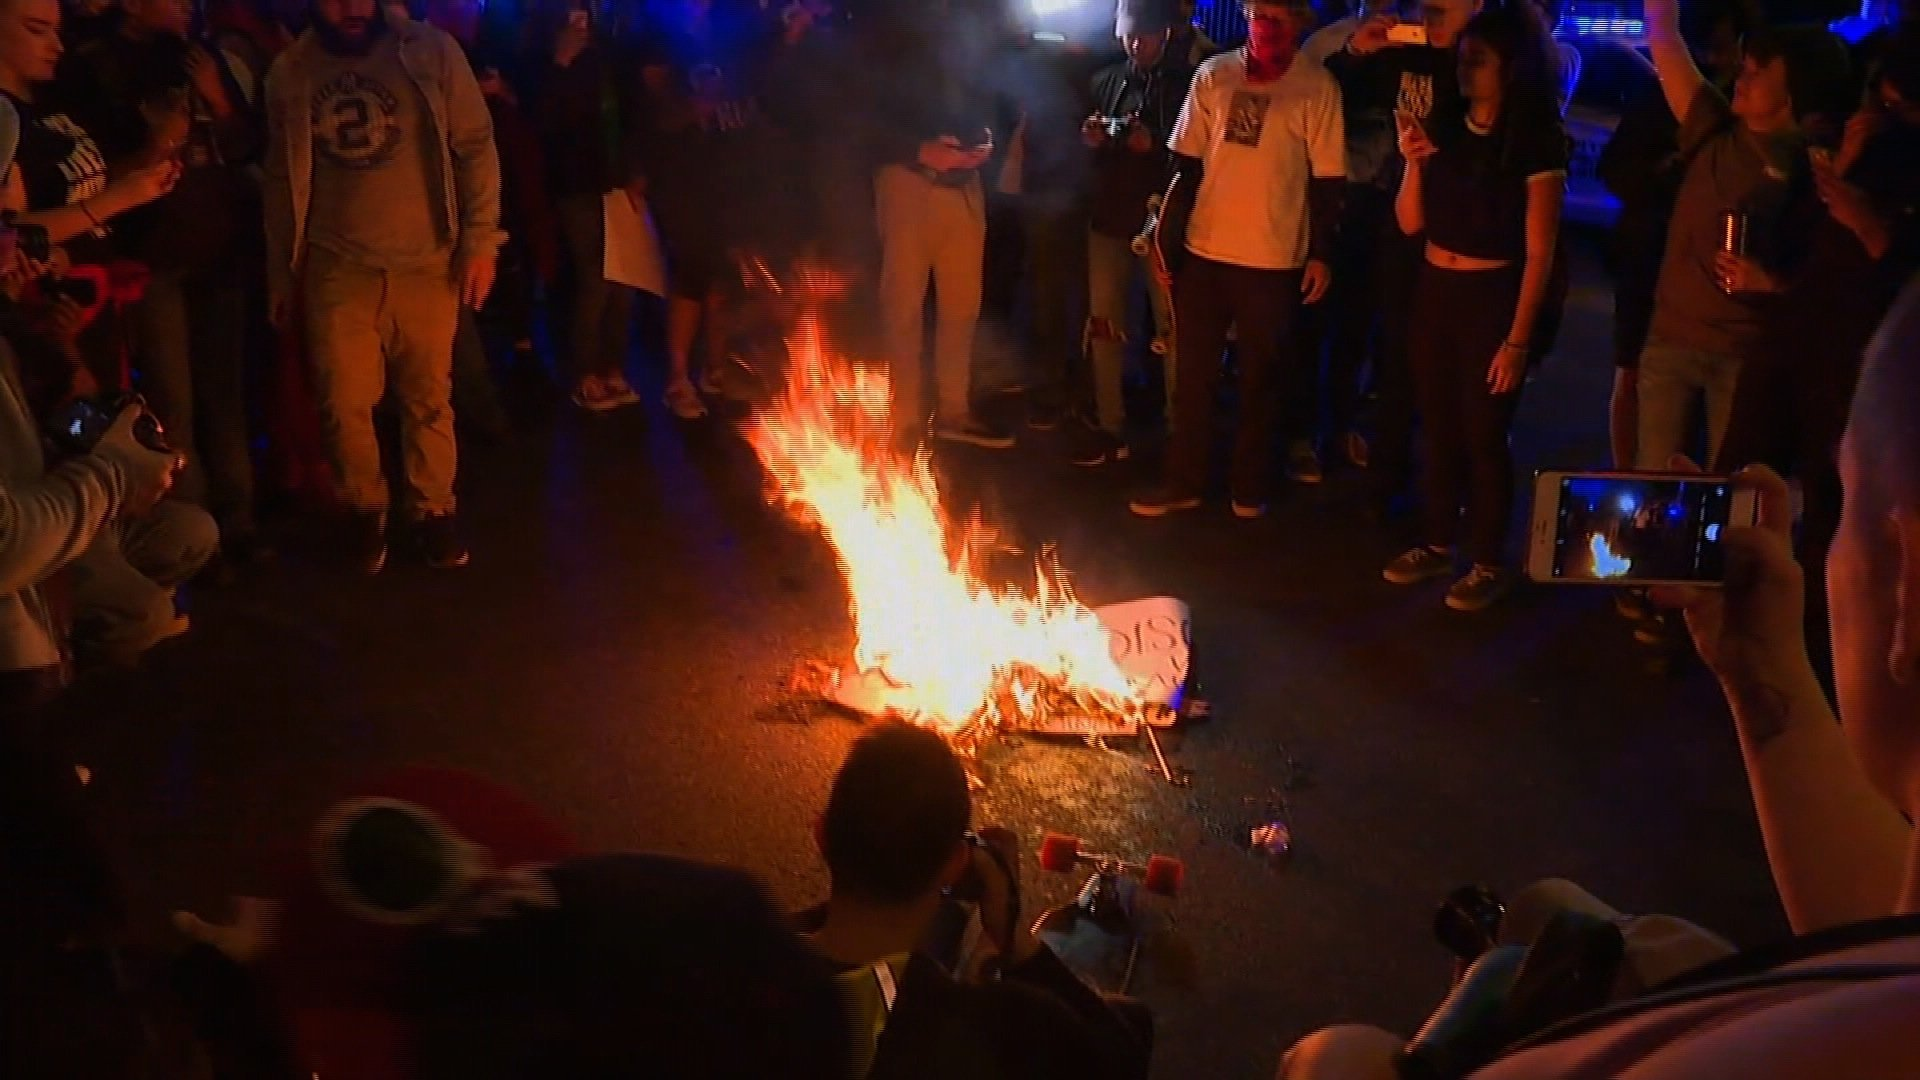 The American flag was burned near the Georgia State Capital in an anti-Trump protest on November 11, 2016.